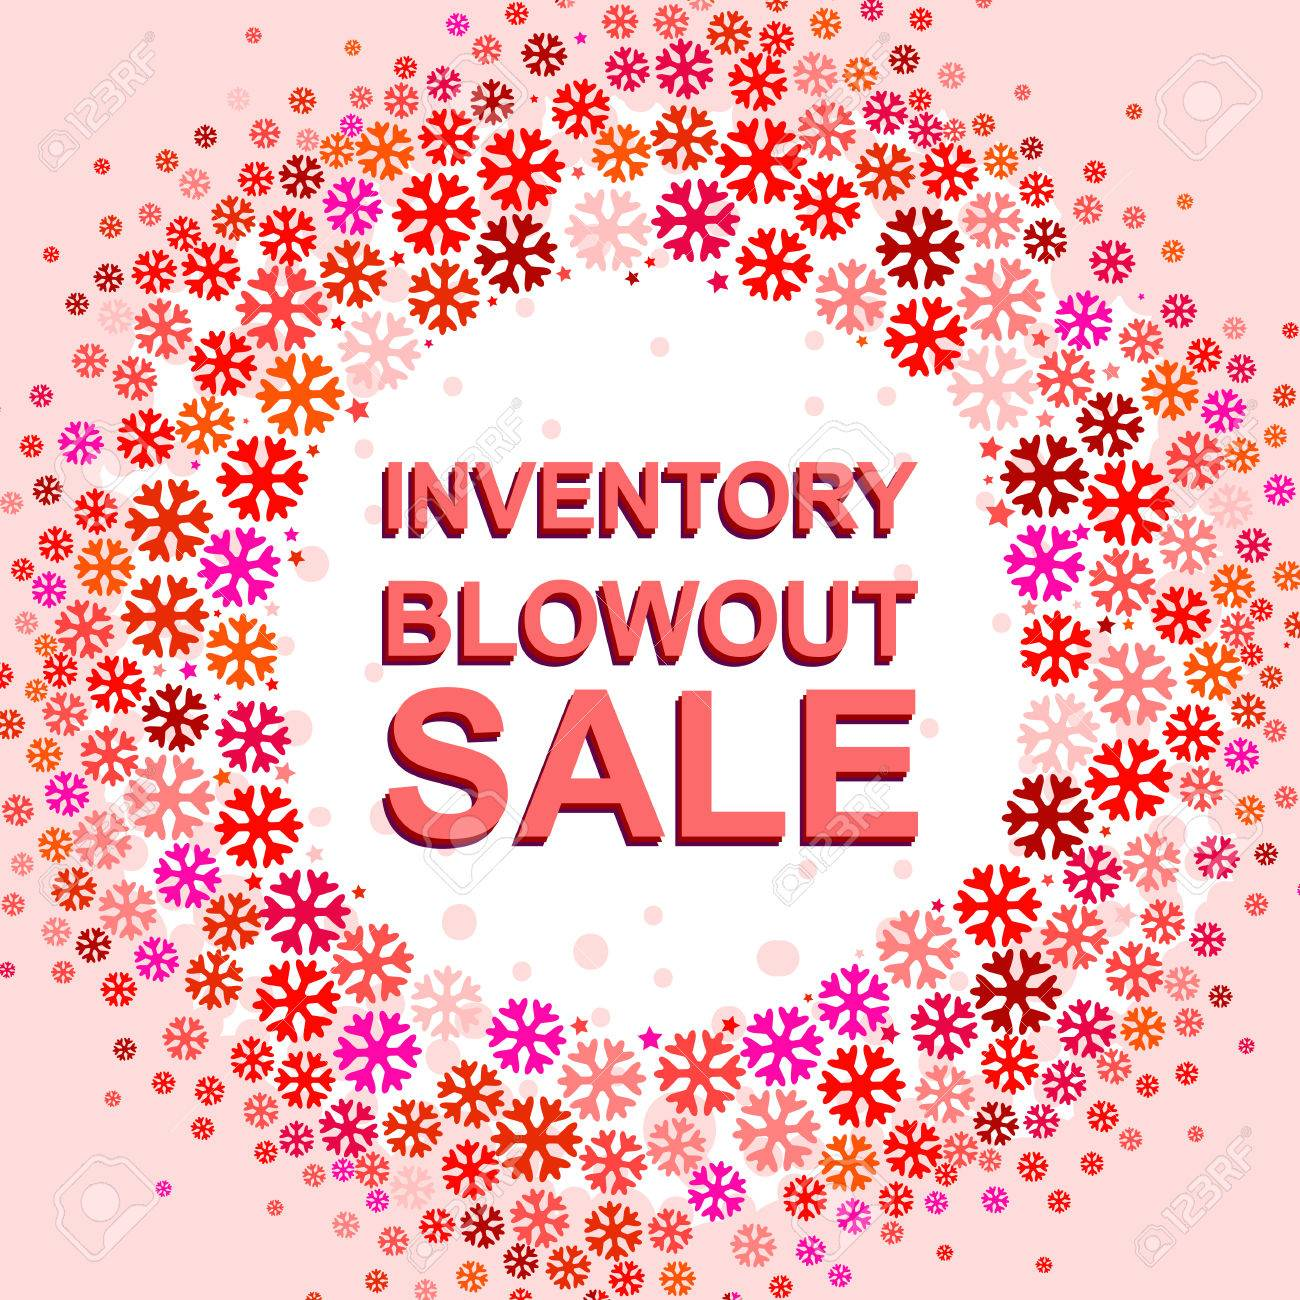 Big Winter Sale Poster With INVENTORY BLOWOUT SALE Text. Advertising ...